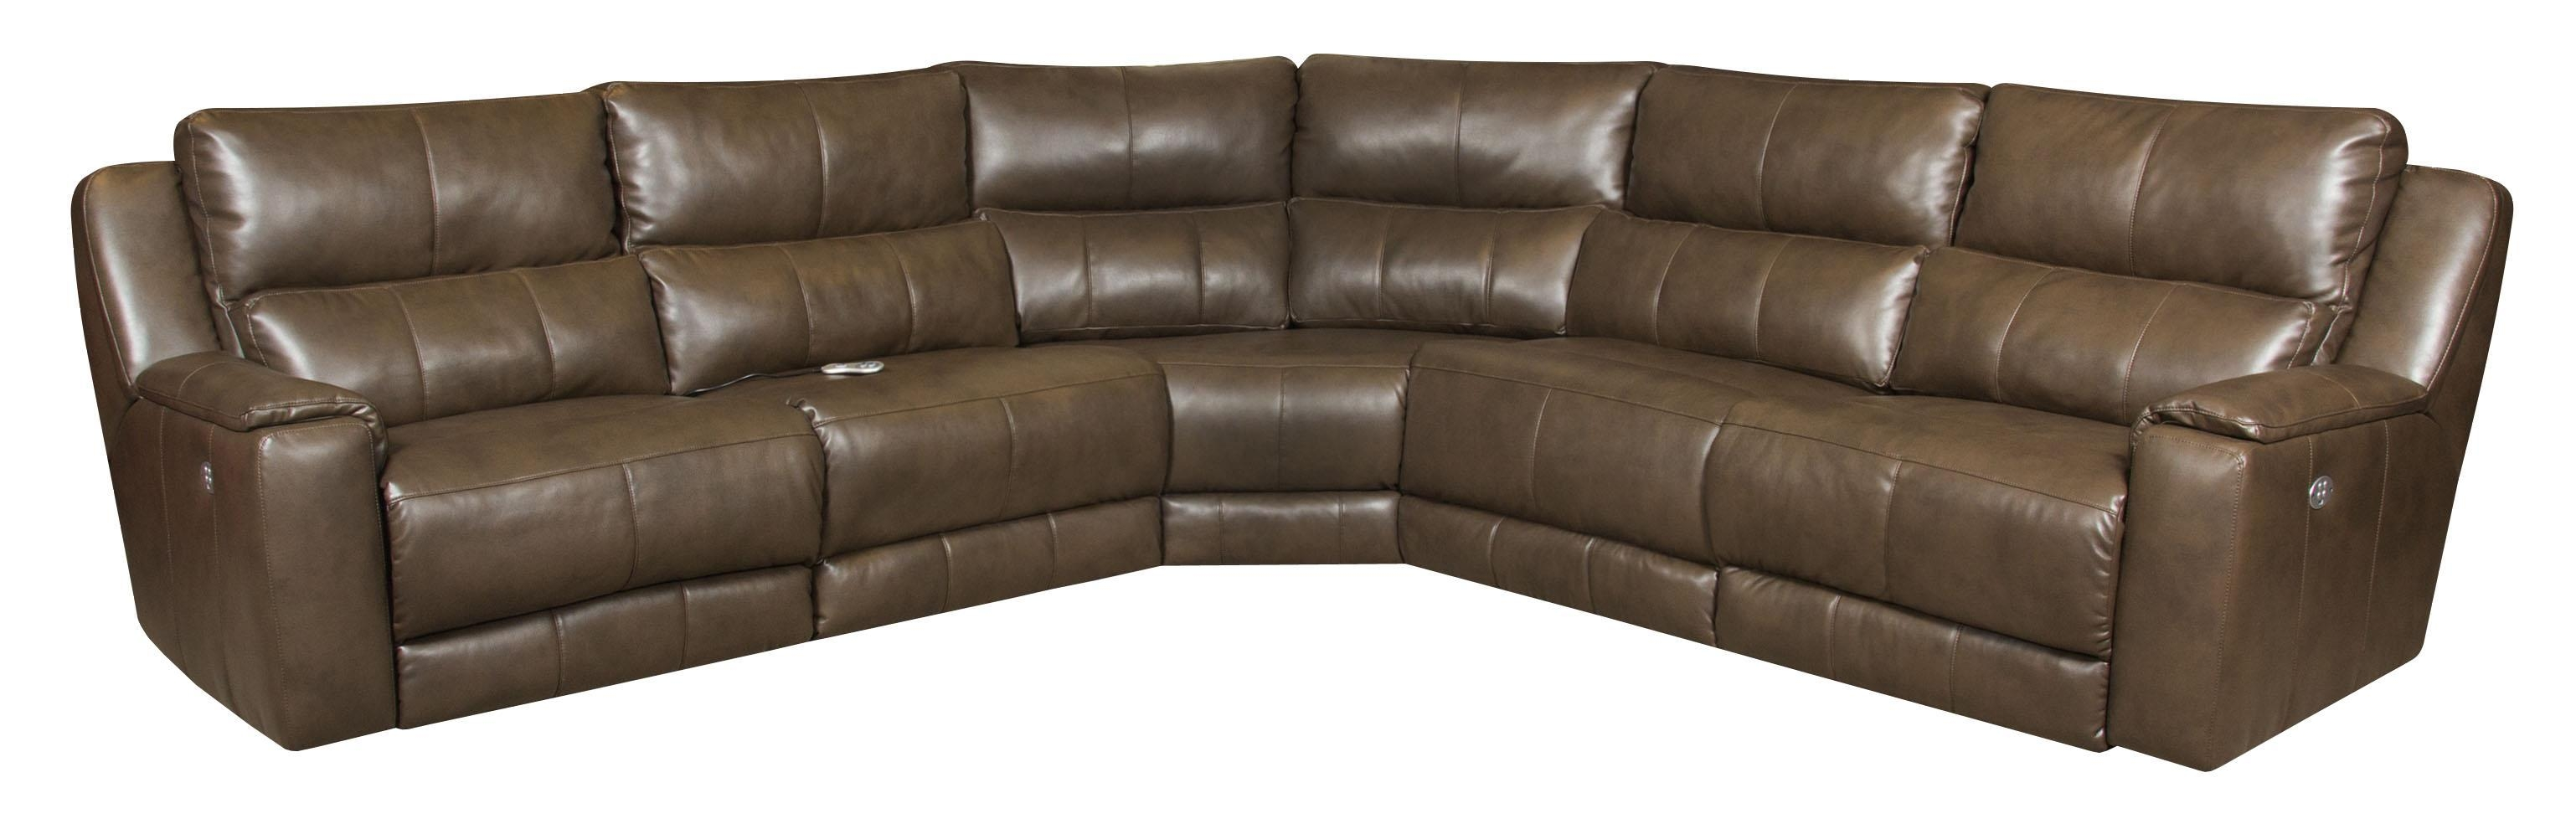 caruso leather 5 piece power motion sectional sofa how tall should a table lamp be 20 top ideas